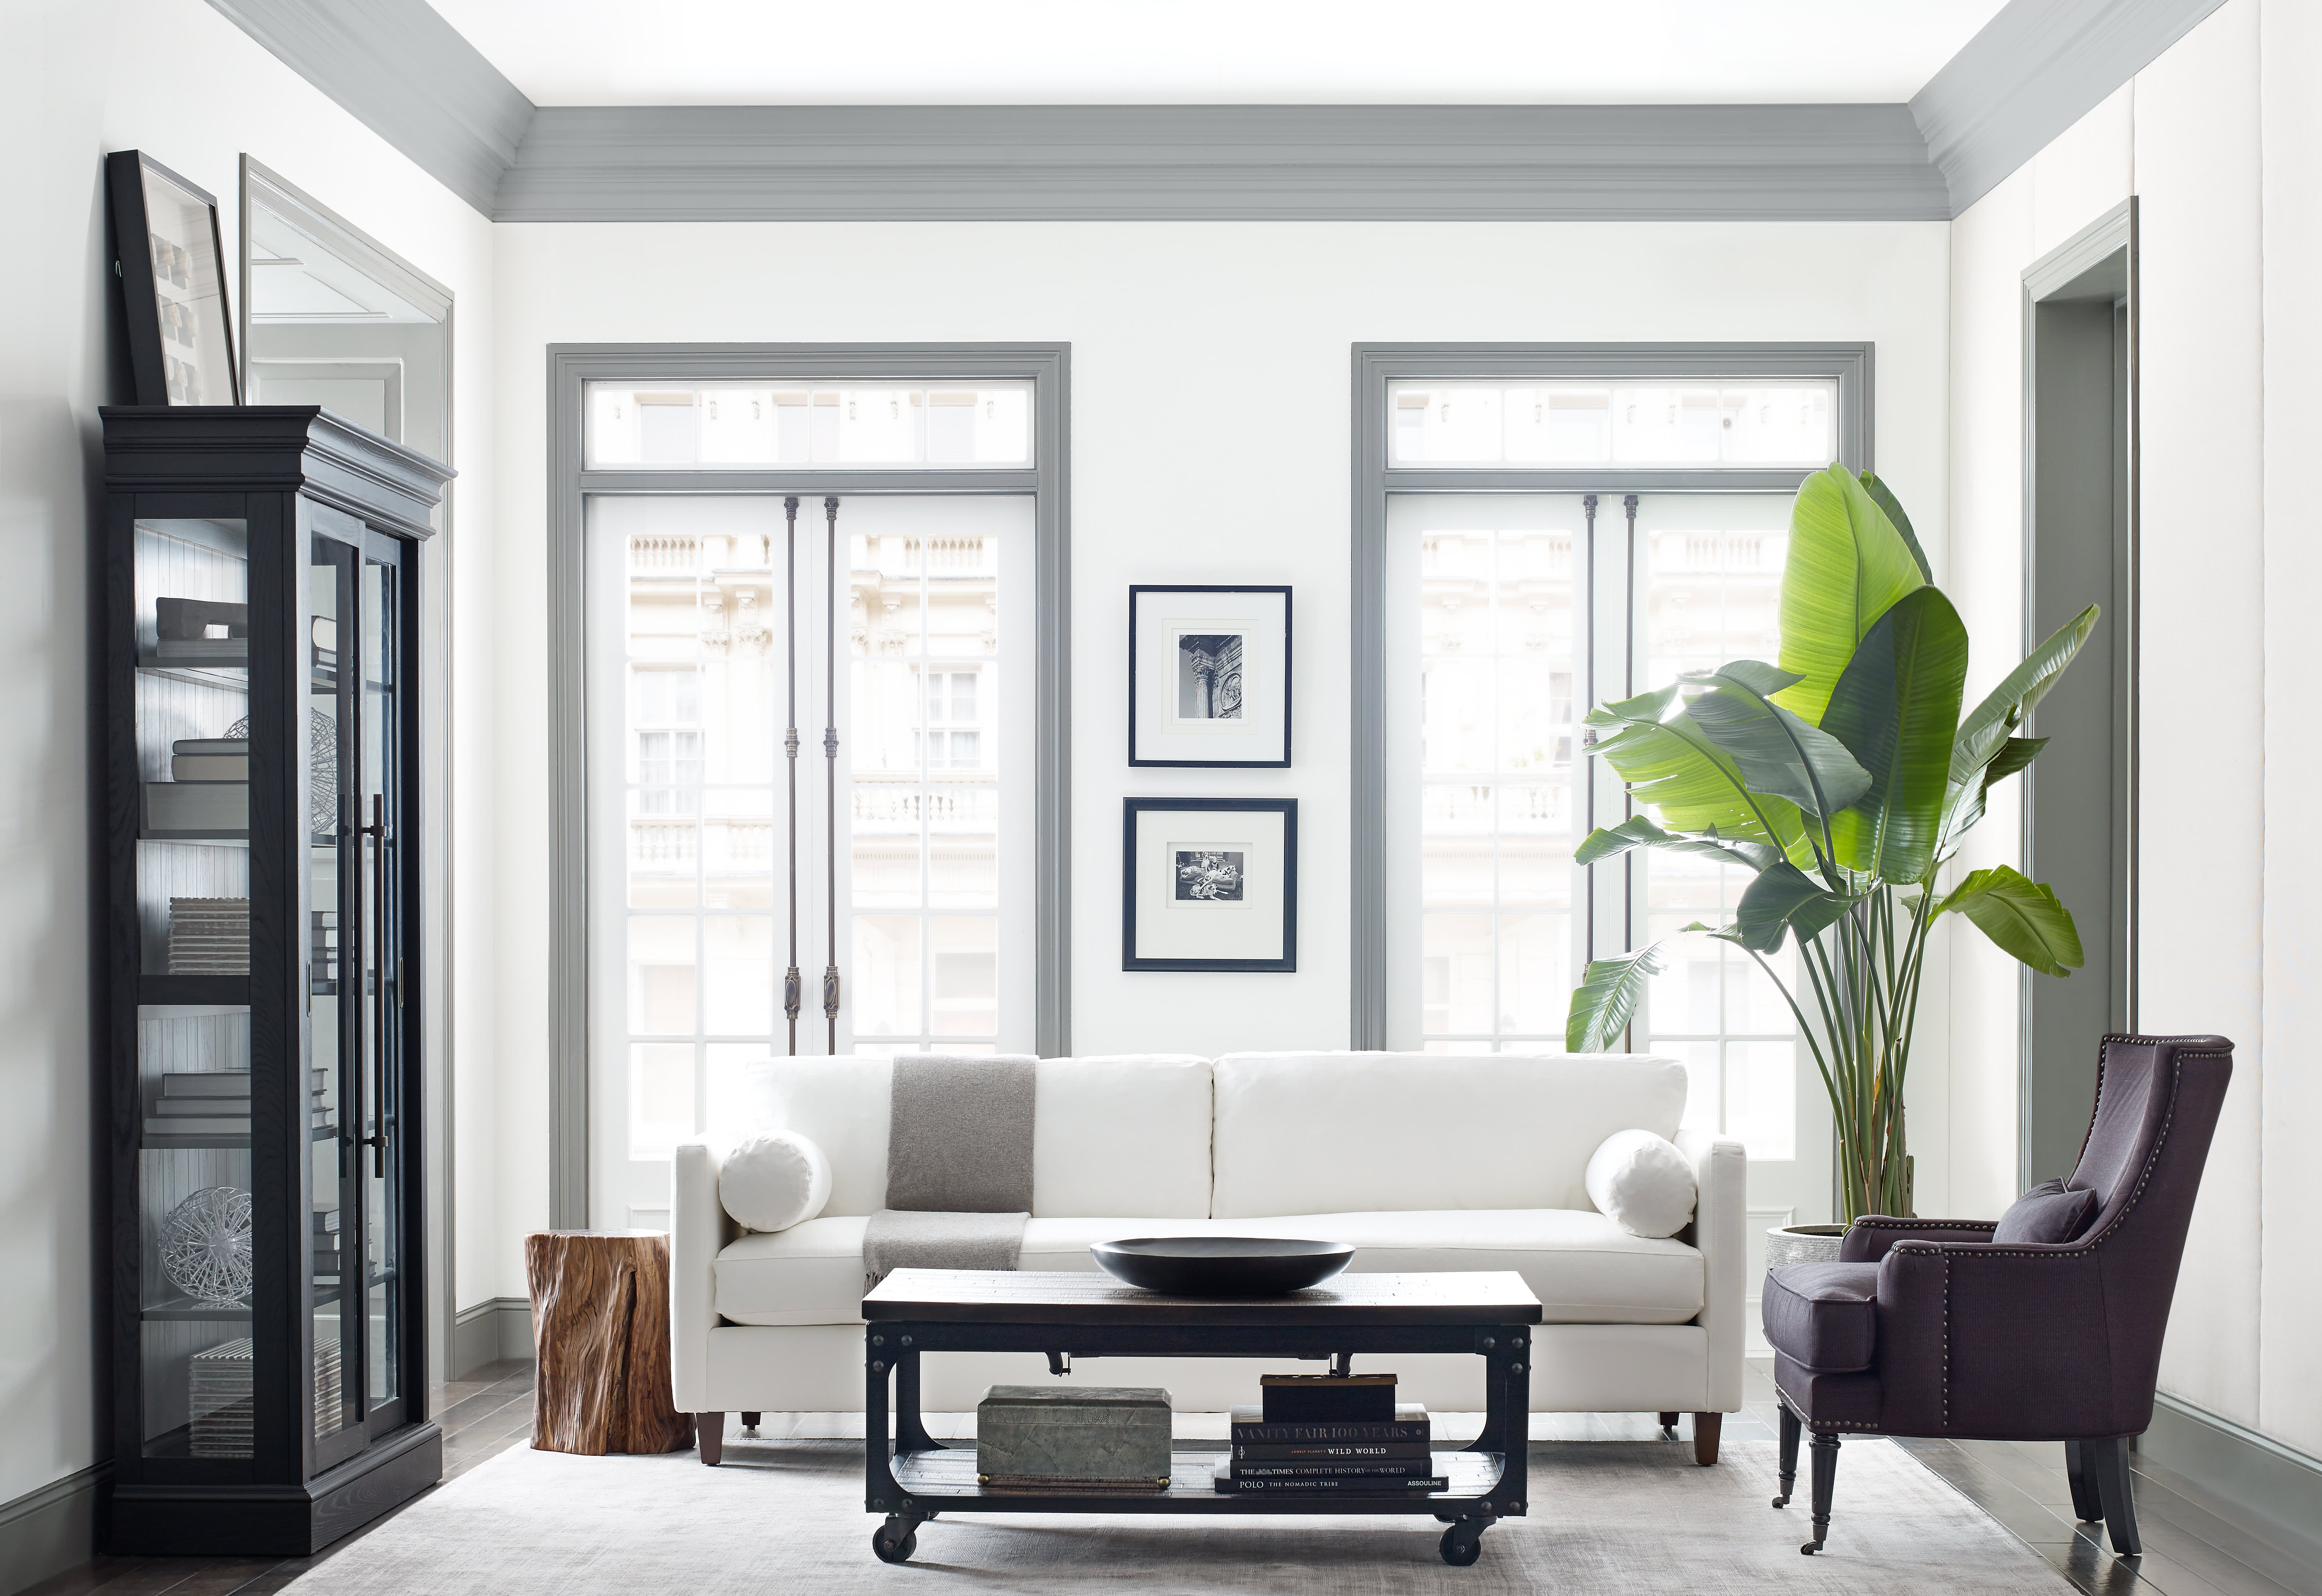 Wayfair S New Home Line Is Full Of Restoration Hardware Style For